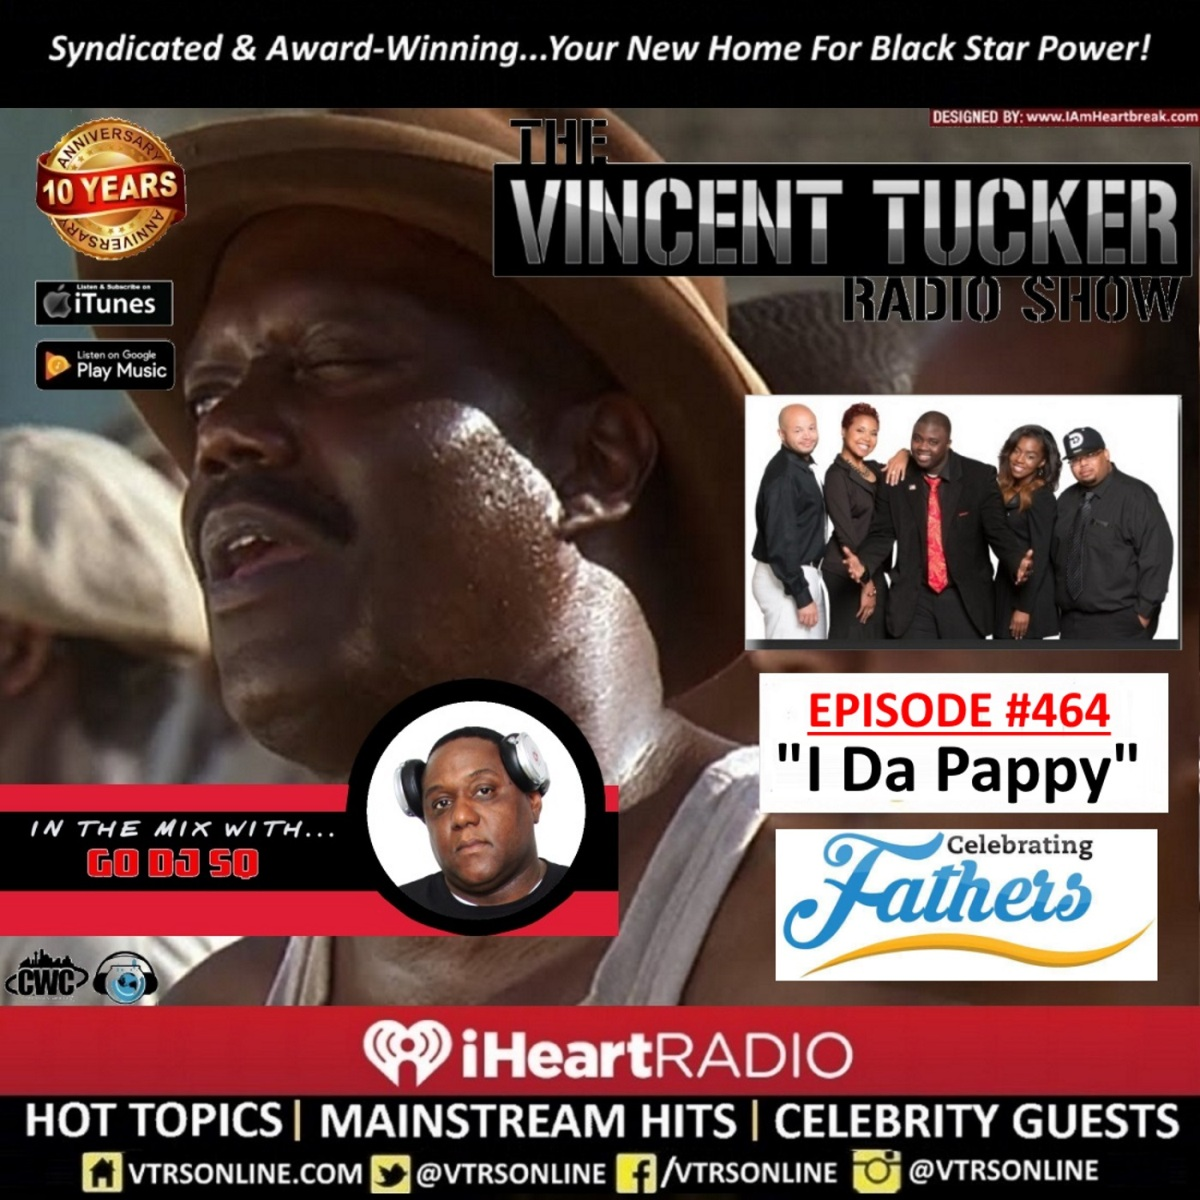 """This Weekend On The VTRS: Episode #464 